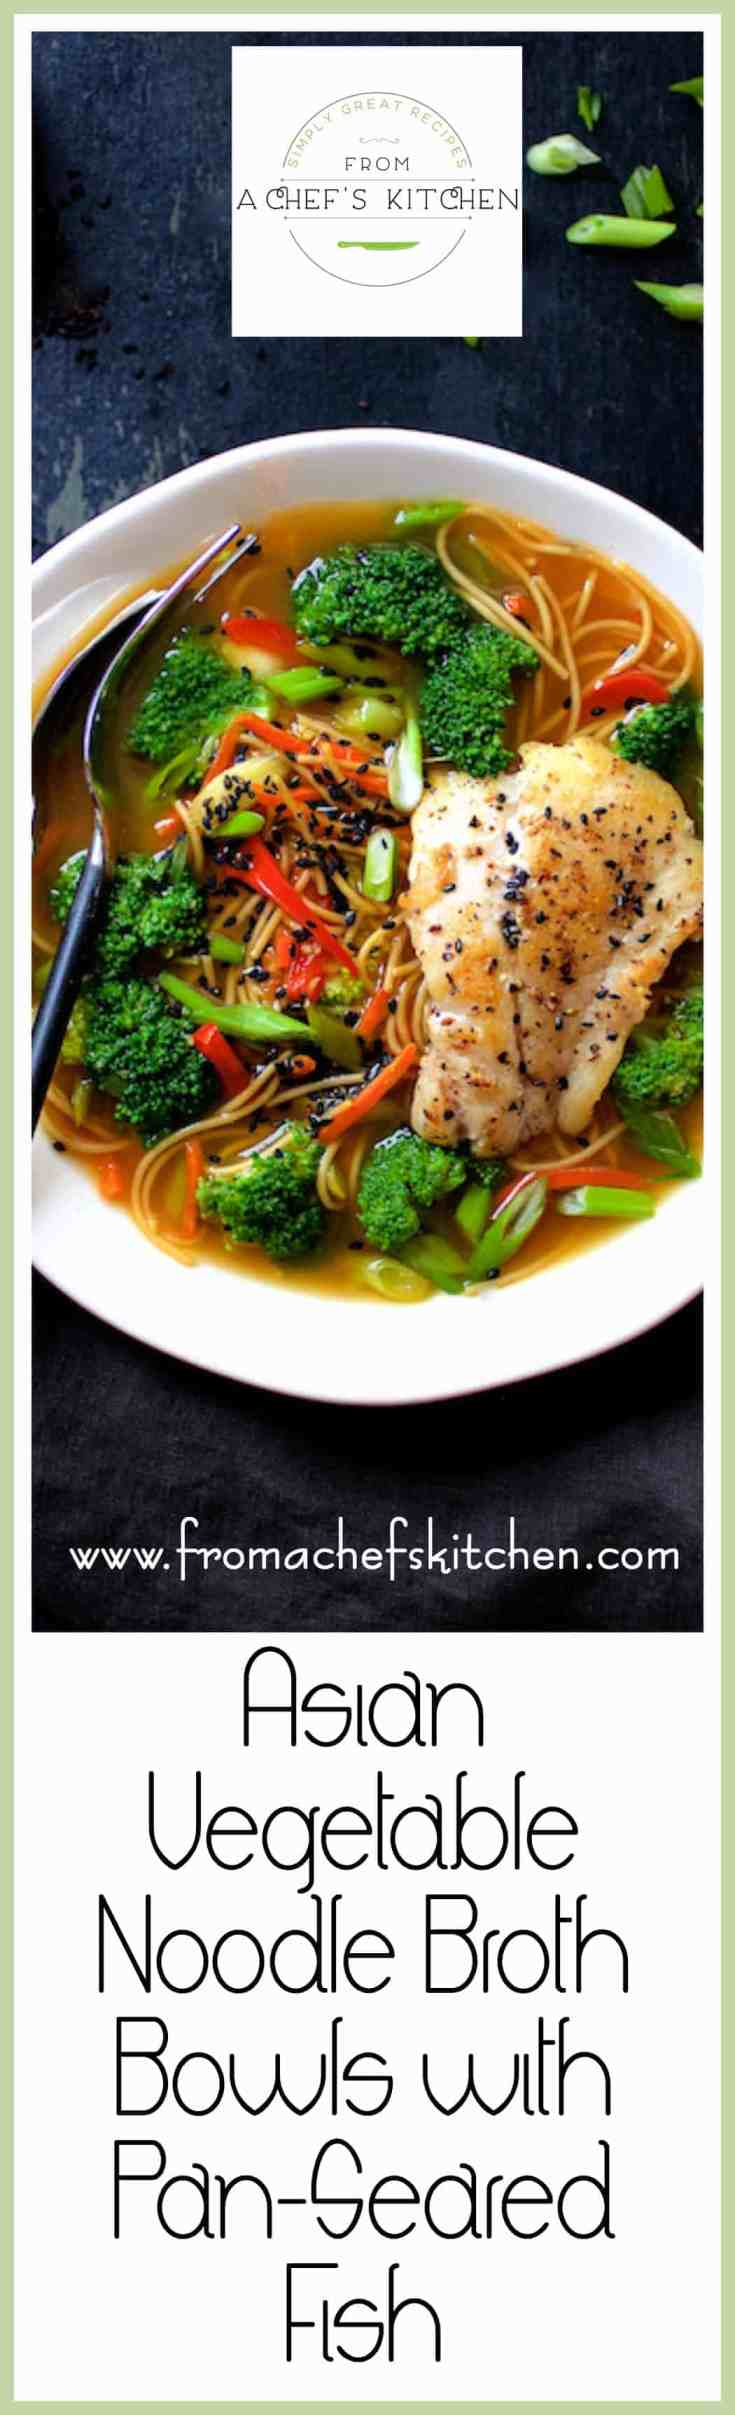 Asian Vegetable Noodle Broth Bowls with Pan Seared Fish are satisfying, healthful, light and versatile and a delicious dinner for two! #asianfood #vegetable #noodle #fish #healthyfood